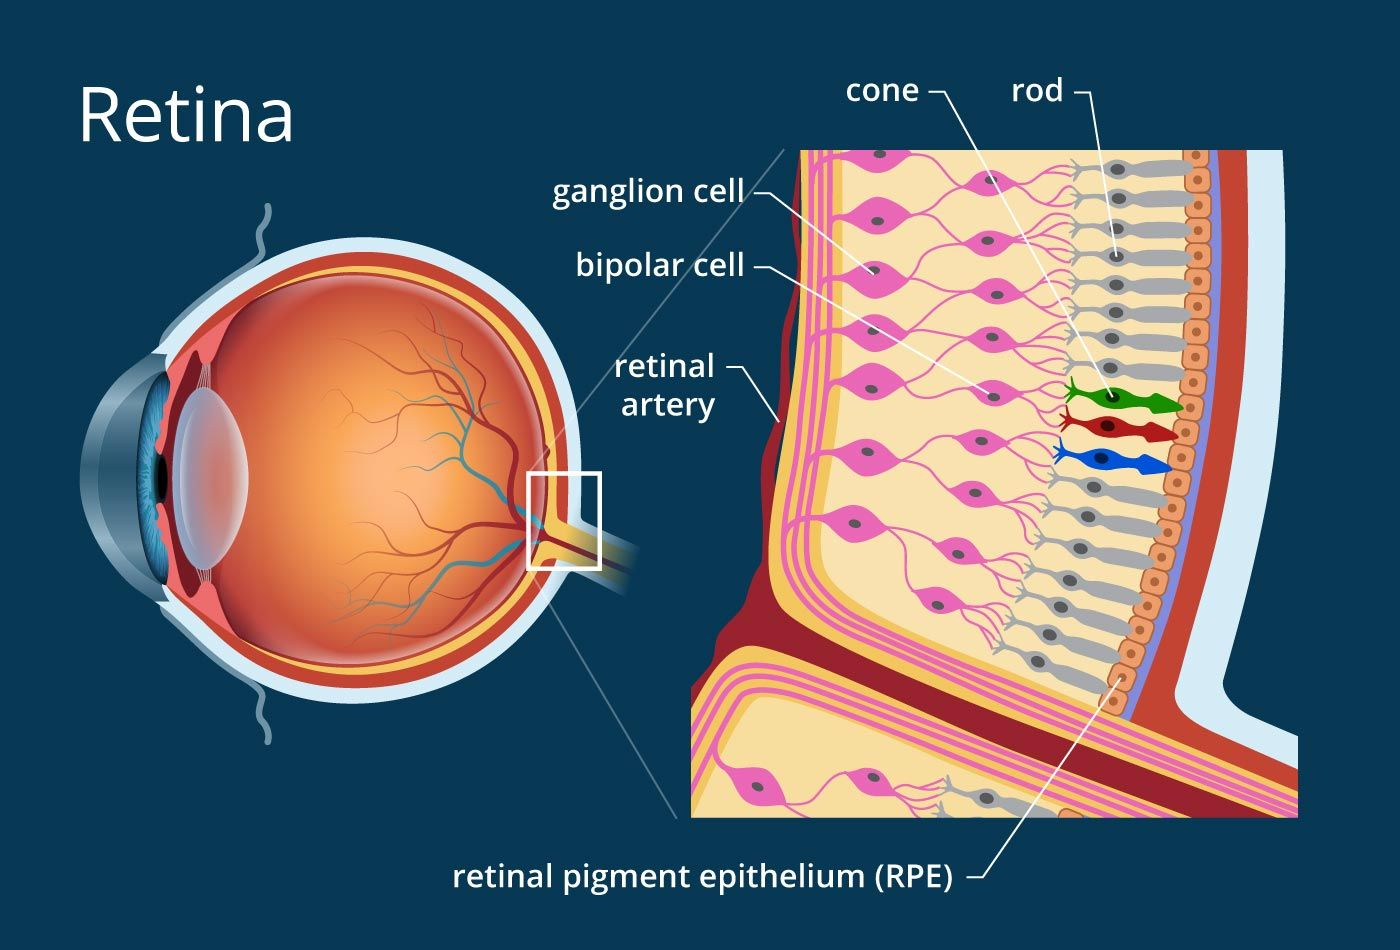 How The Retina Works Detailed Illustration The Retina Eye Anatomy Parts Of The Eye